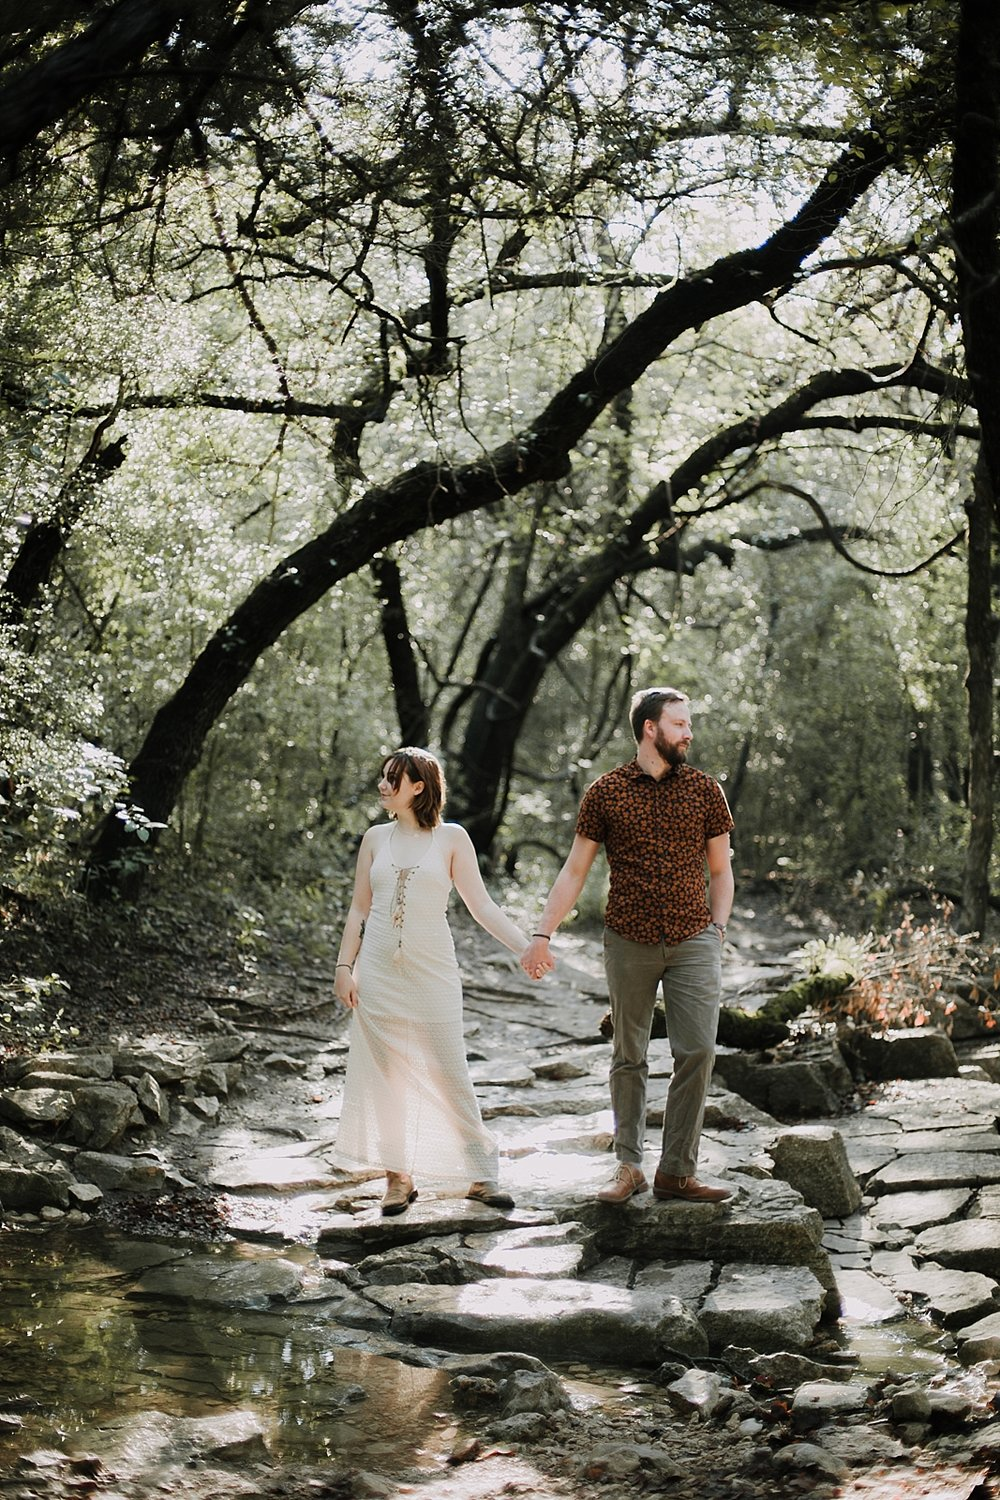 couple hiking in the woods, austin texas wedding photographer, paris france wedding photographer, south africa wedding photographer, dripping springs texas wedding photographer